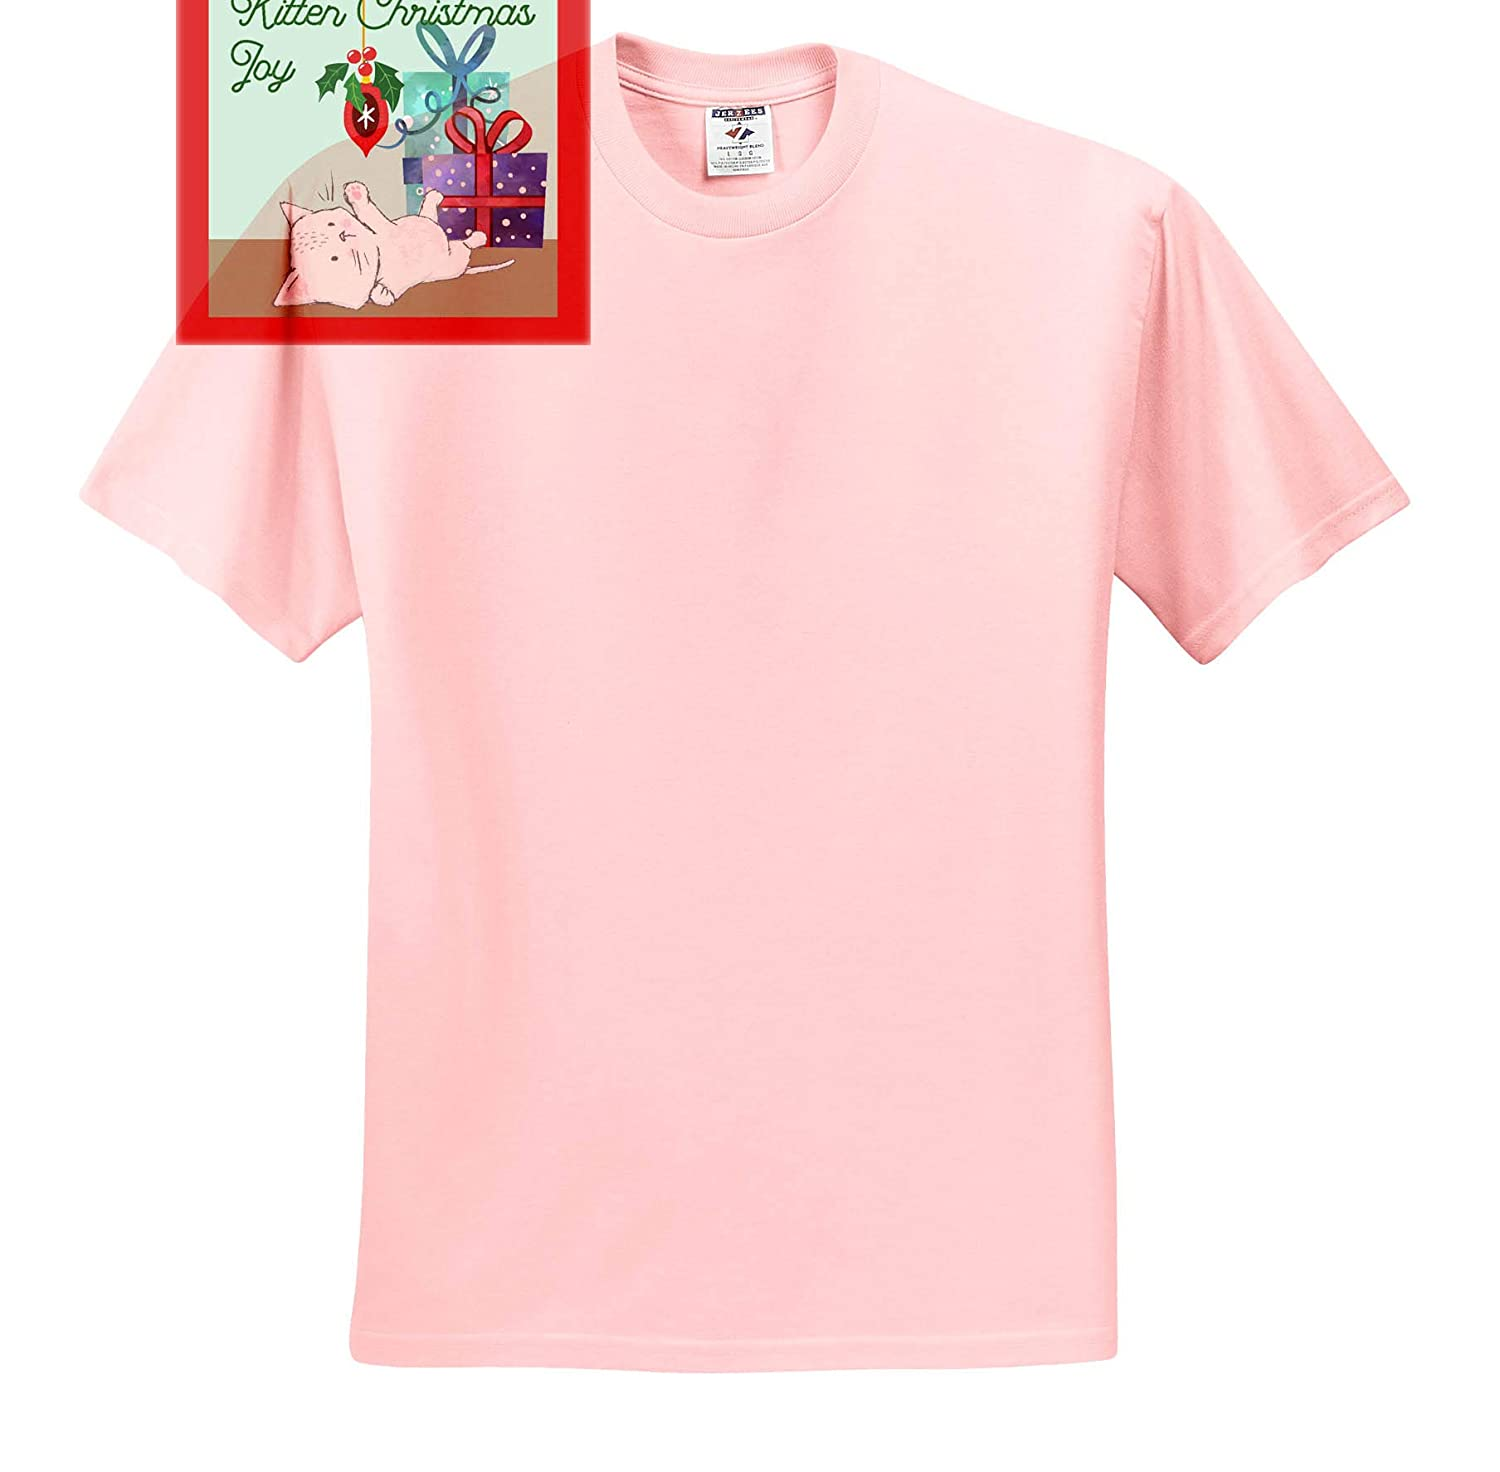 3dRose TNMGraphics Christmas White Kitten Playing with Dangling Ornaments on The Christmas Tree T-Shirts